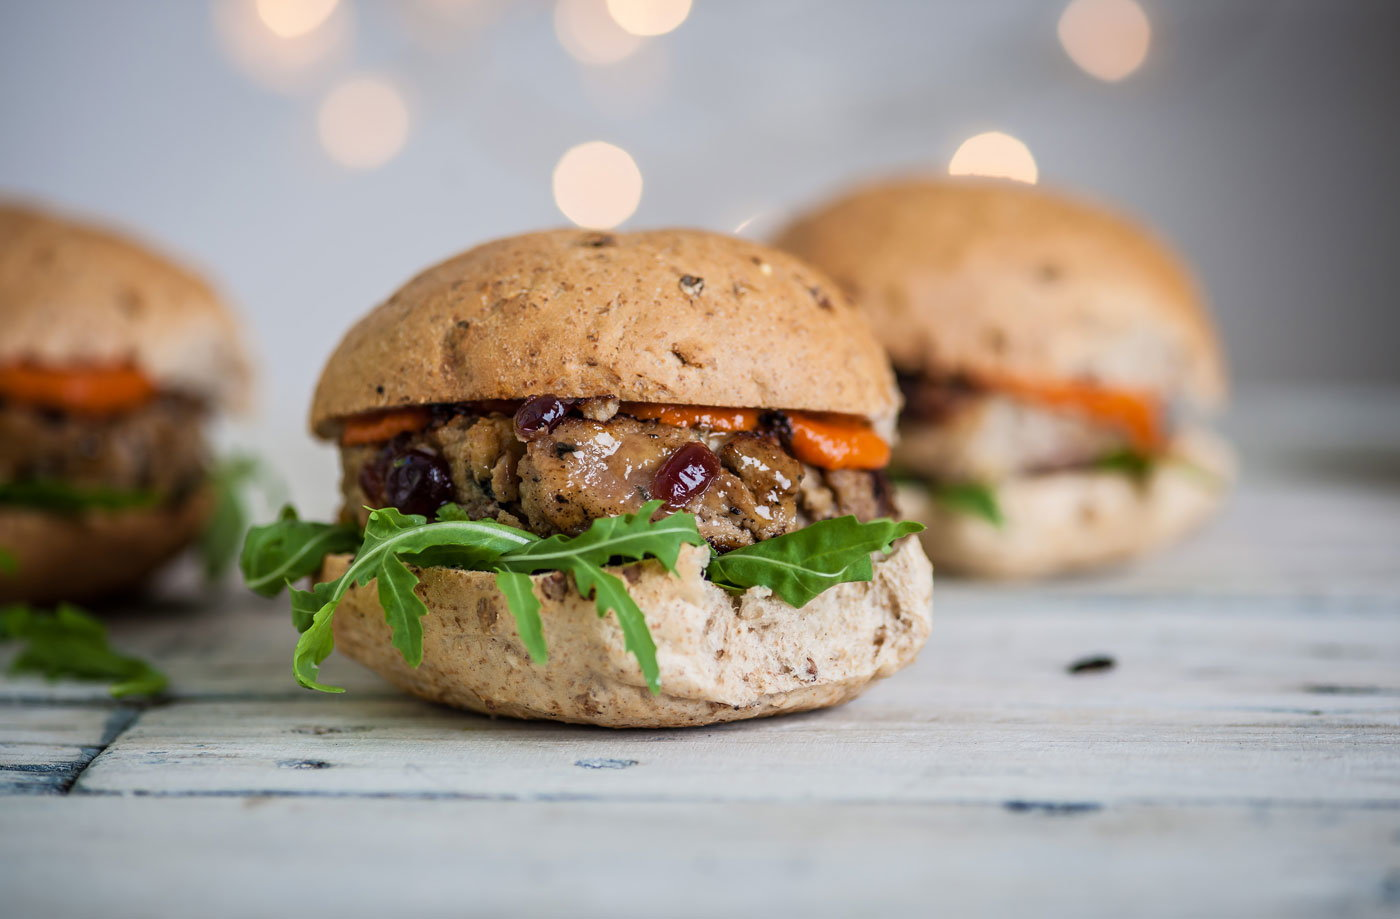 Galton Blackiston's cranberry stuffing and pork burgers recipe